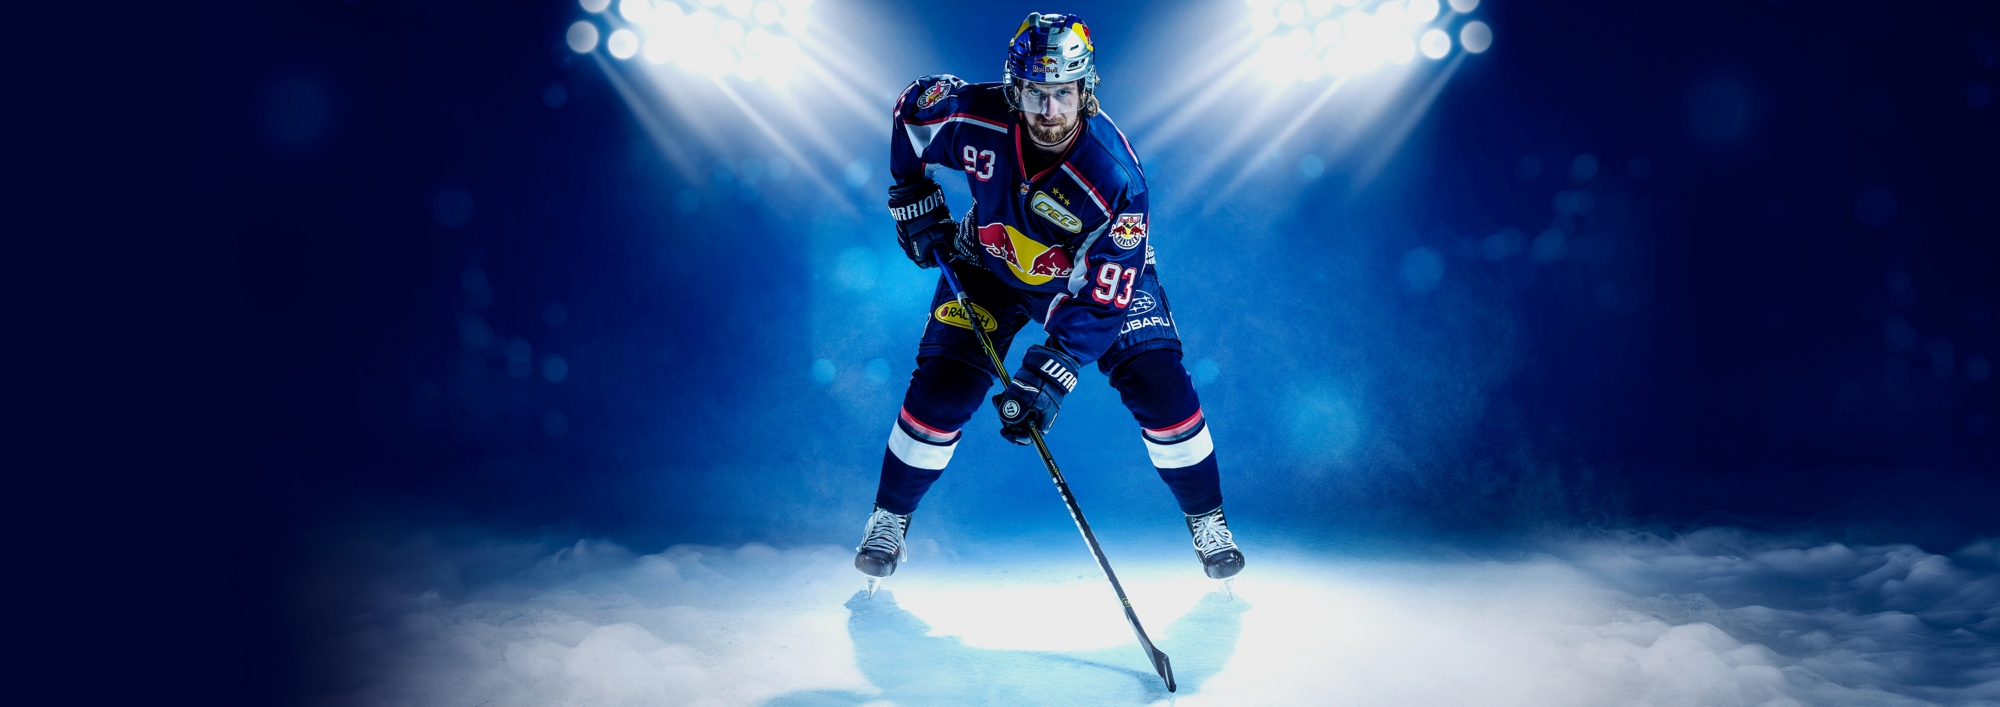 Wear the EHC Red Bull München Fan Collection. EXPLORE NOW. BACK ON THE ICE d0f96ff4e